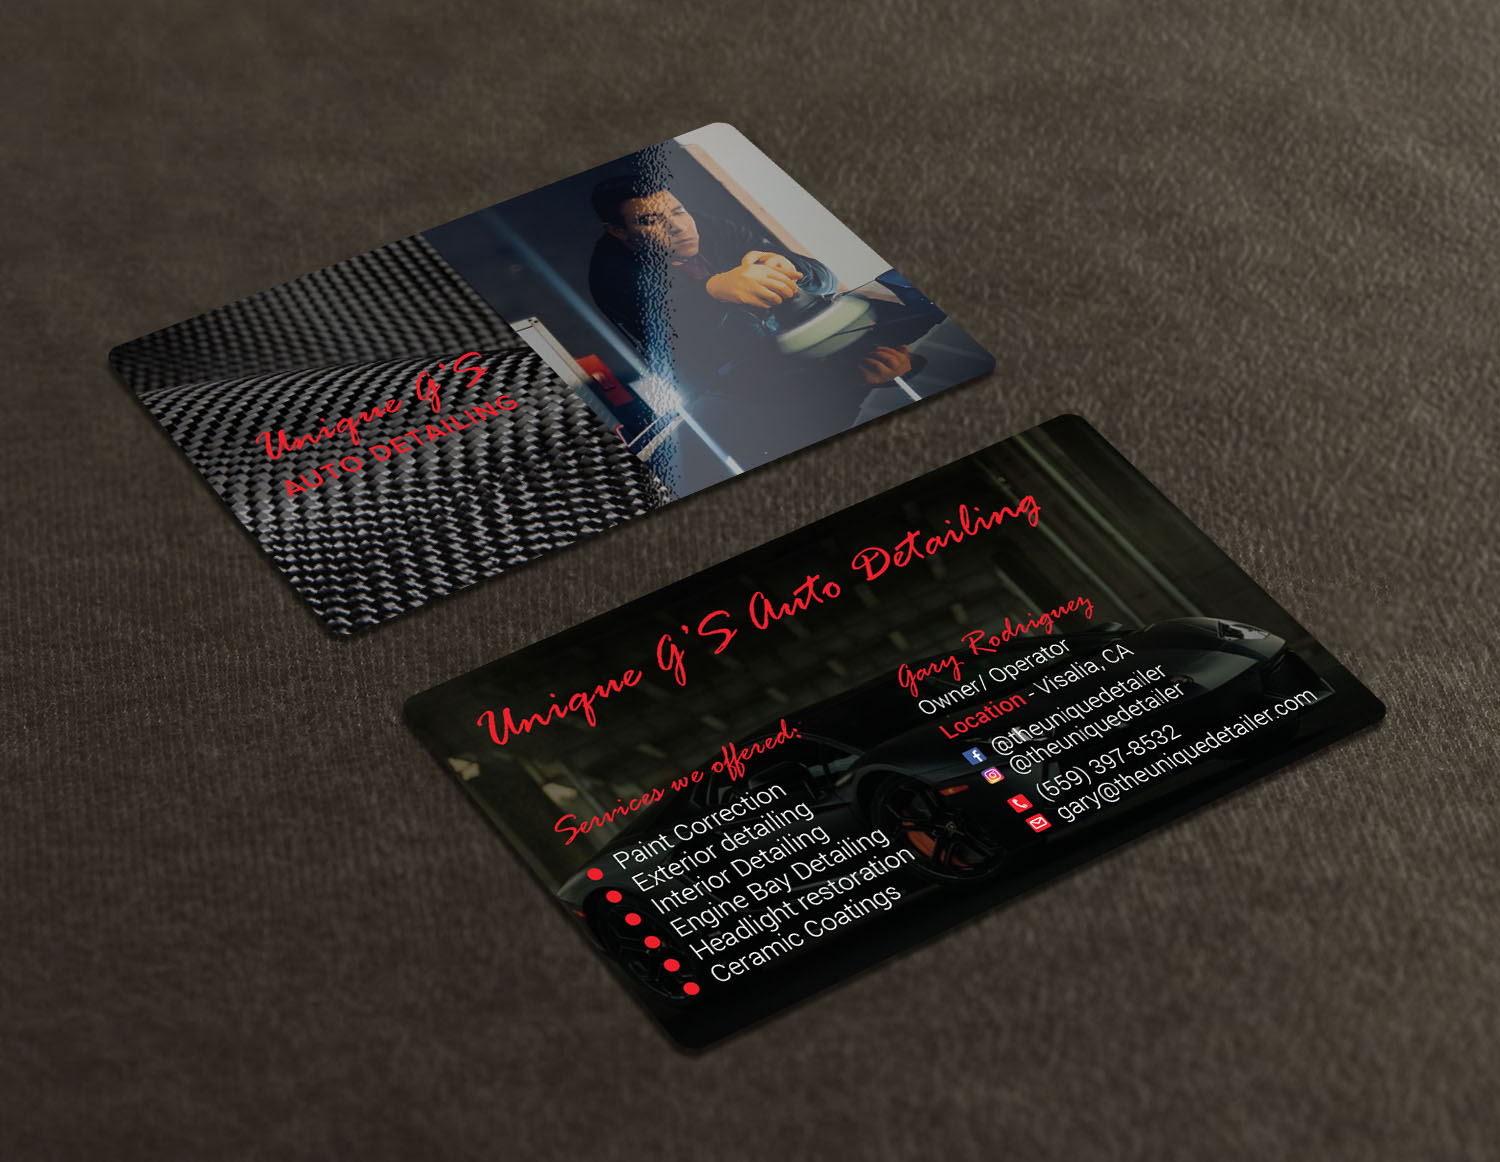 Modern professional automotive business card design for a company business card design by avanger000 for this project design 18052440 reheart Choice Image